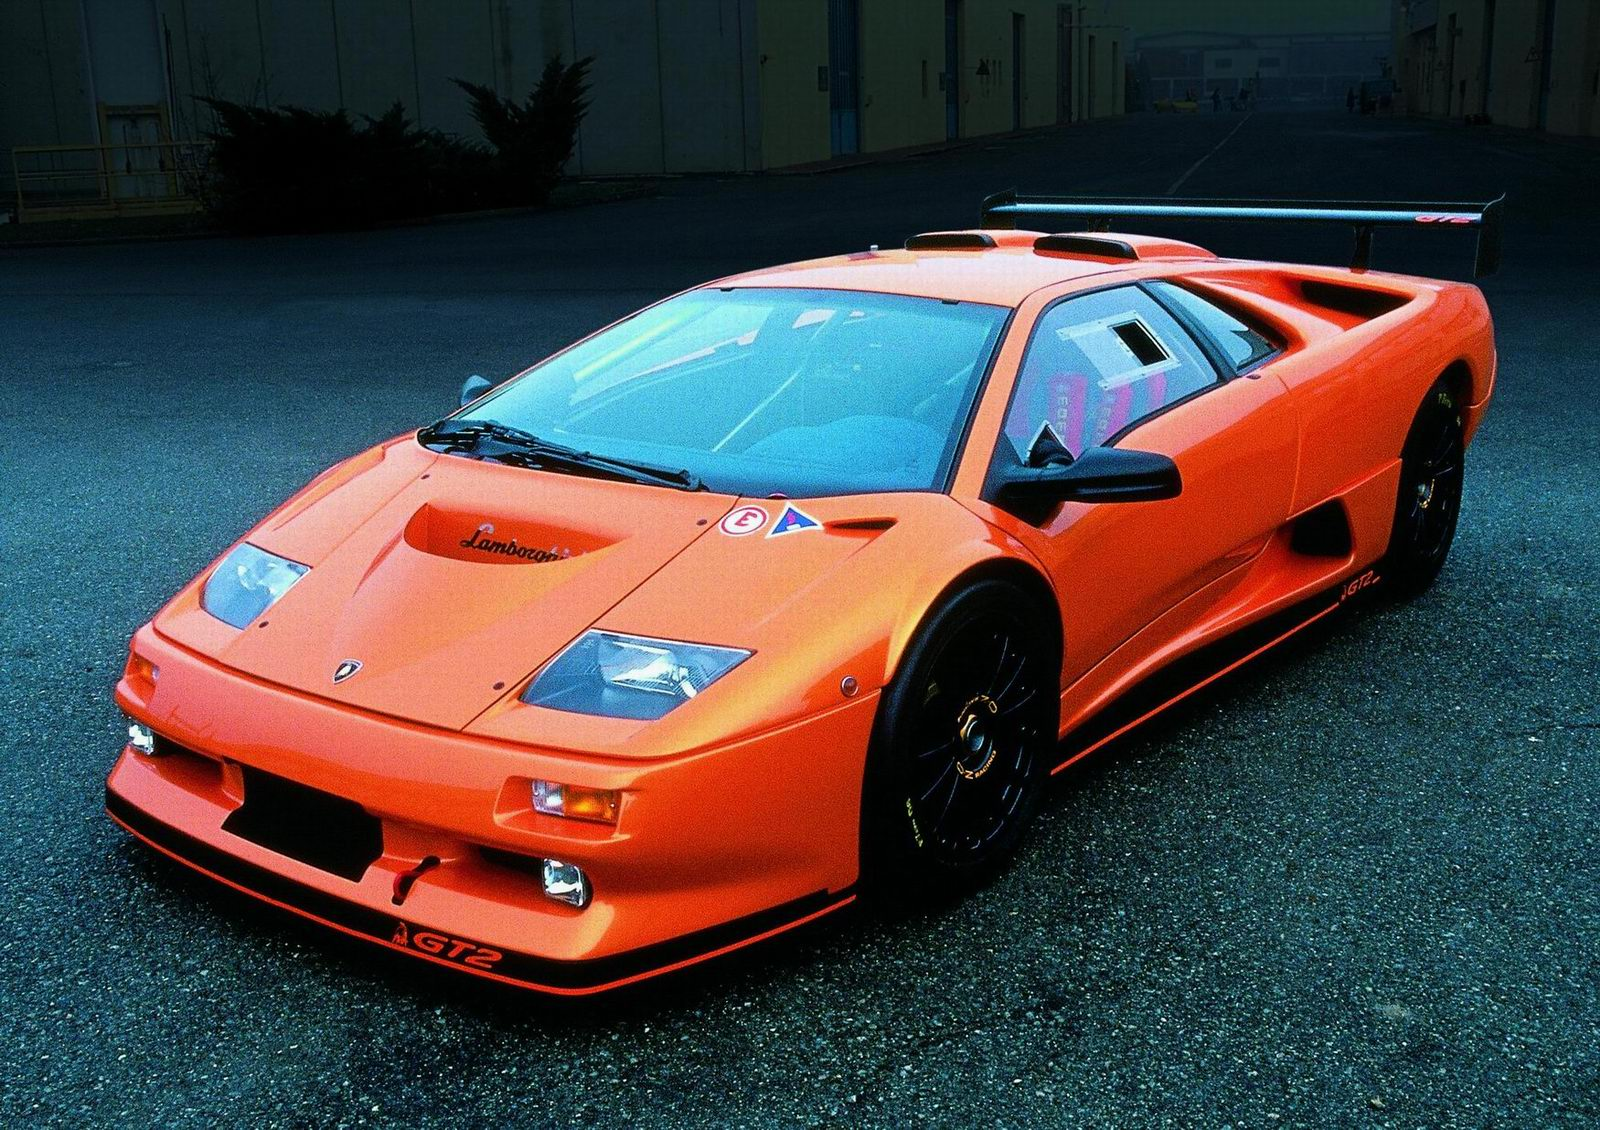 Lamborghini Diablo GT photo 12984